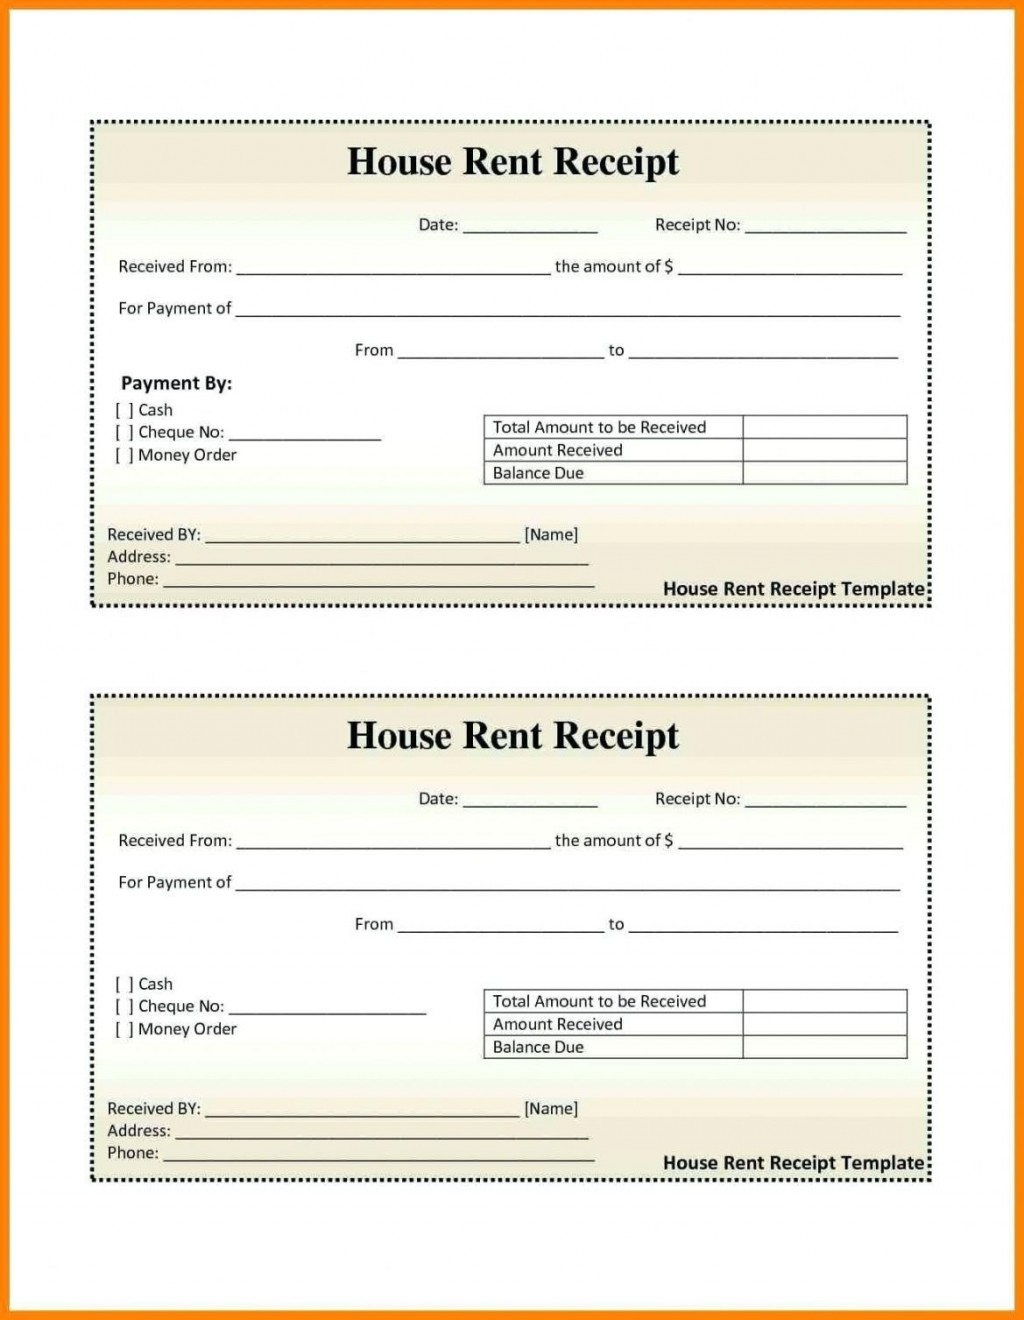 000 Excellent House Rent Receipt Sample Doc Photo  Template Word Document Free Download Format For Income TaxLarge